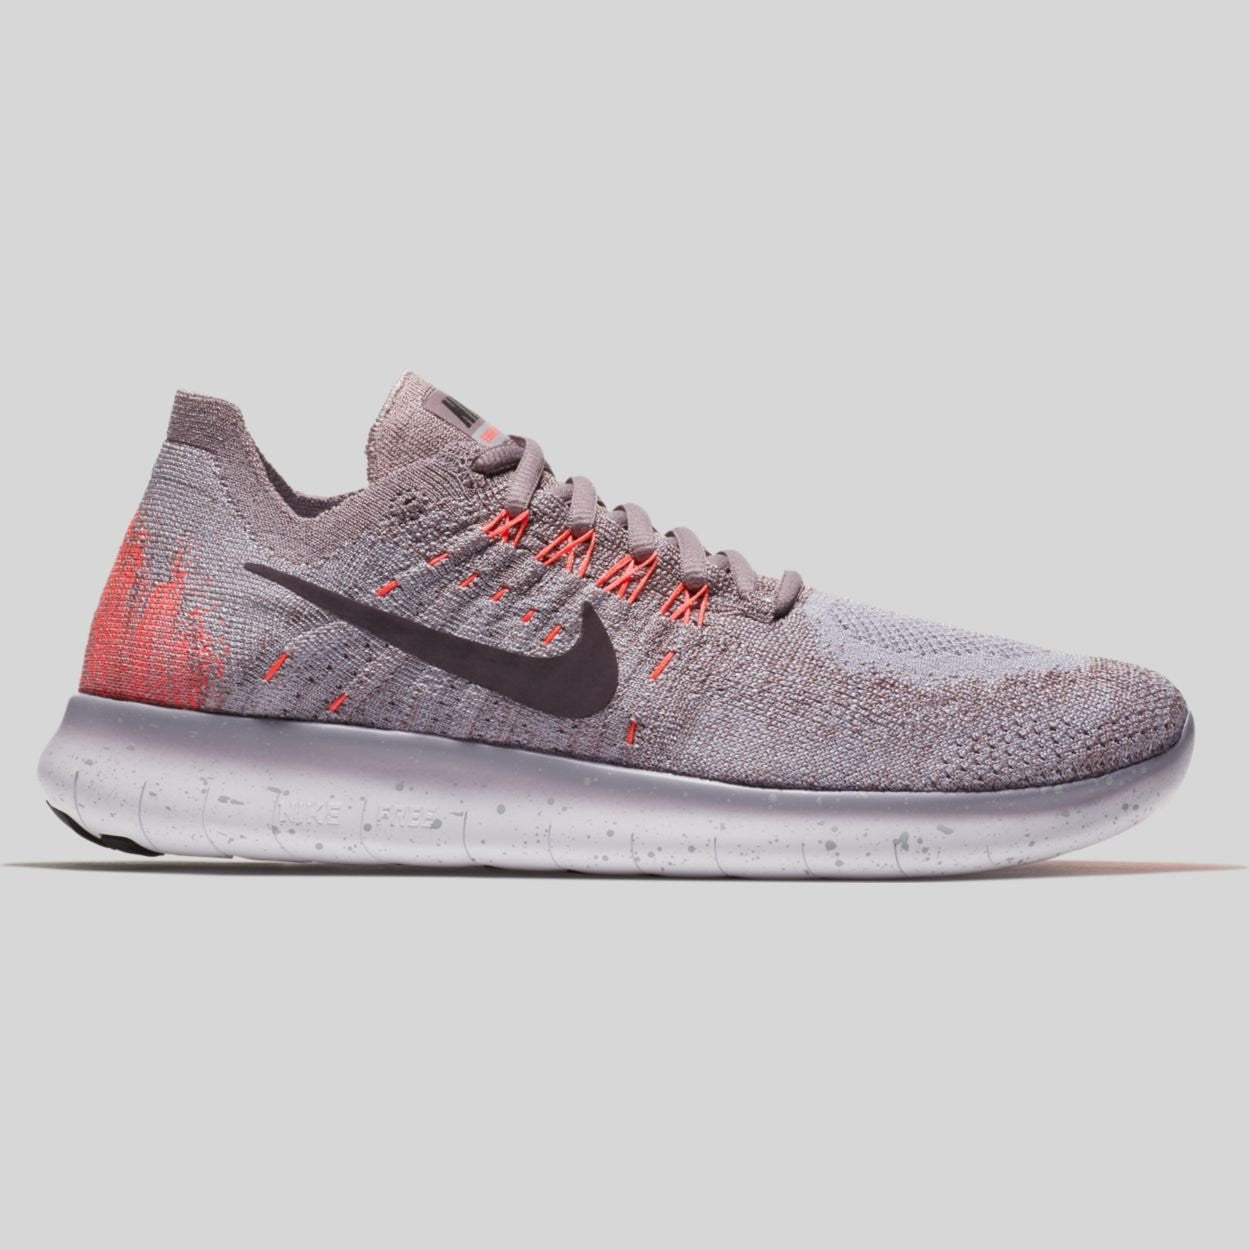 7abae8039f7 Nike Wmns Free RN Flyknit 2017 Taupe Grey Port Wine Solar Red (880844-200